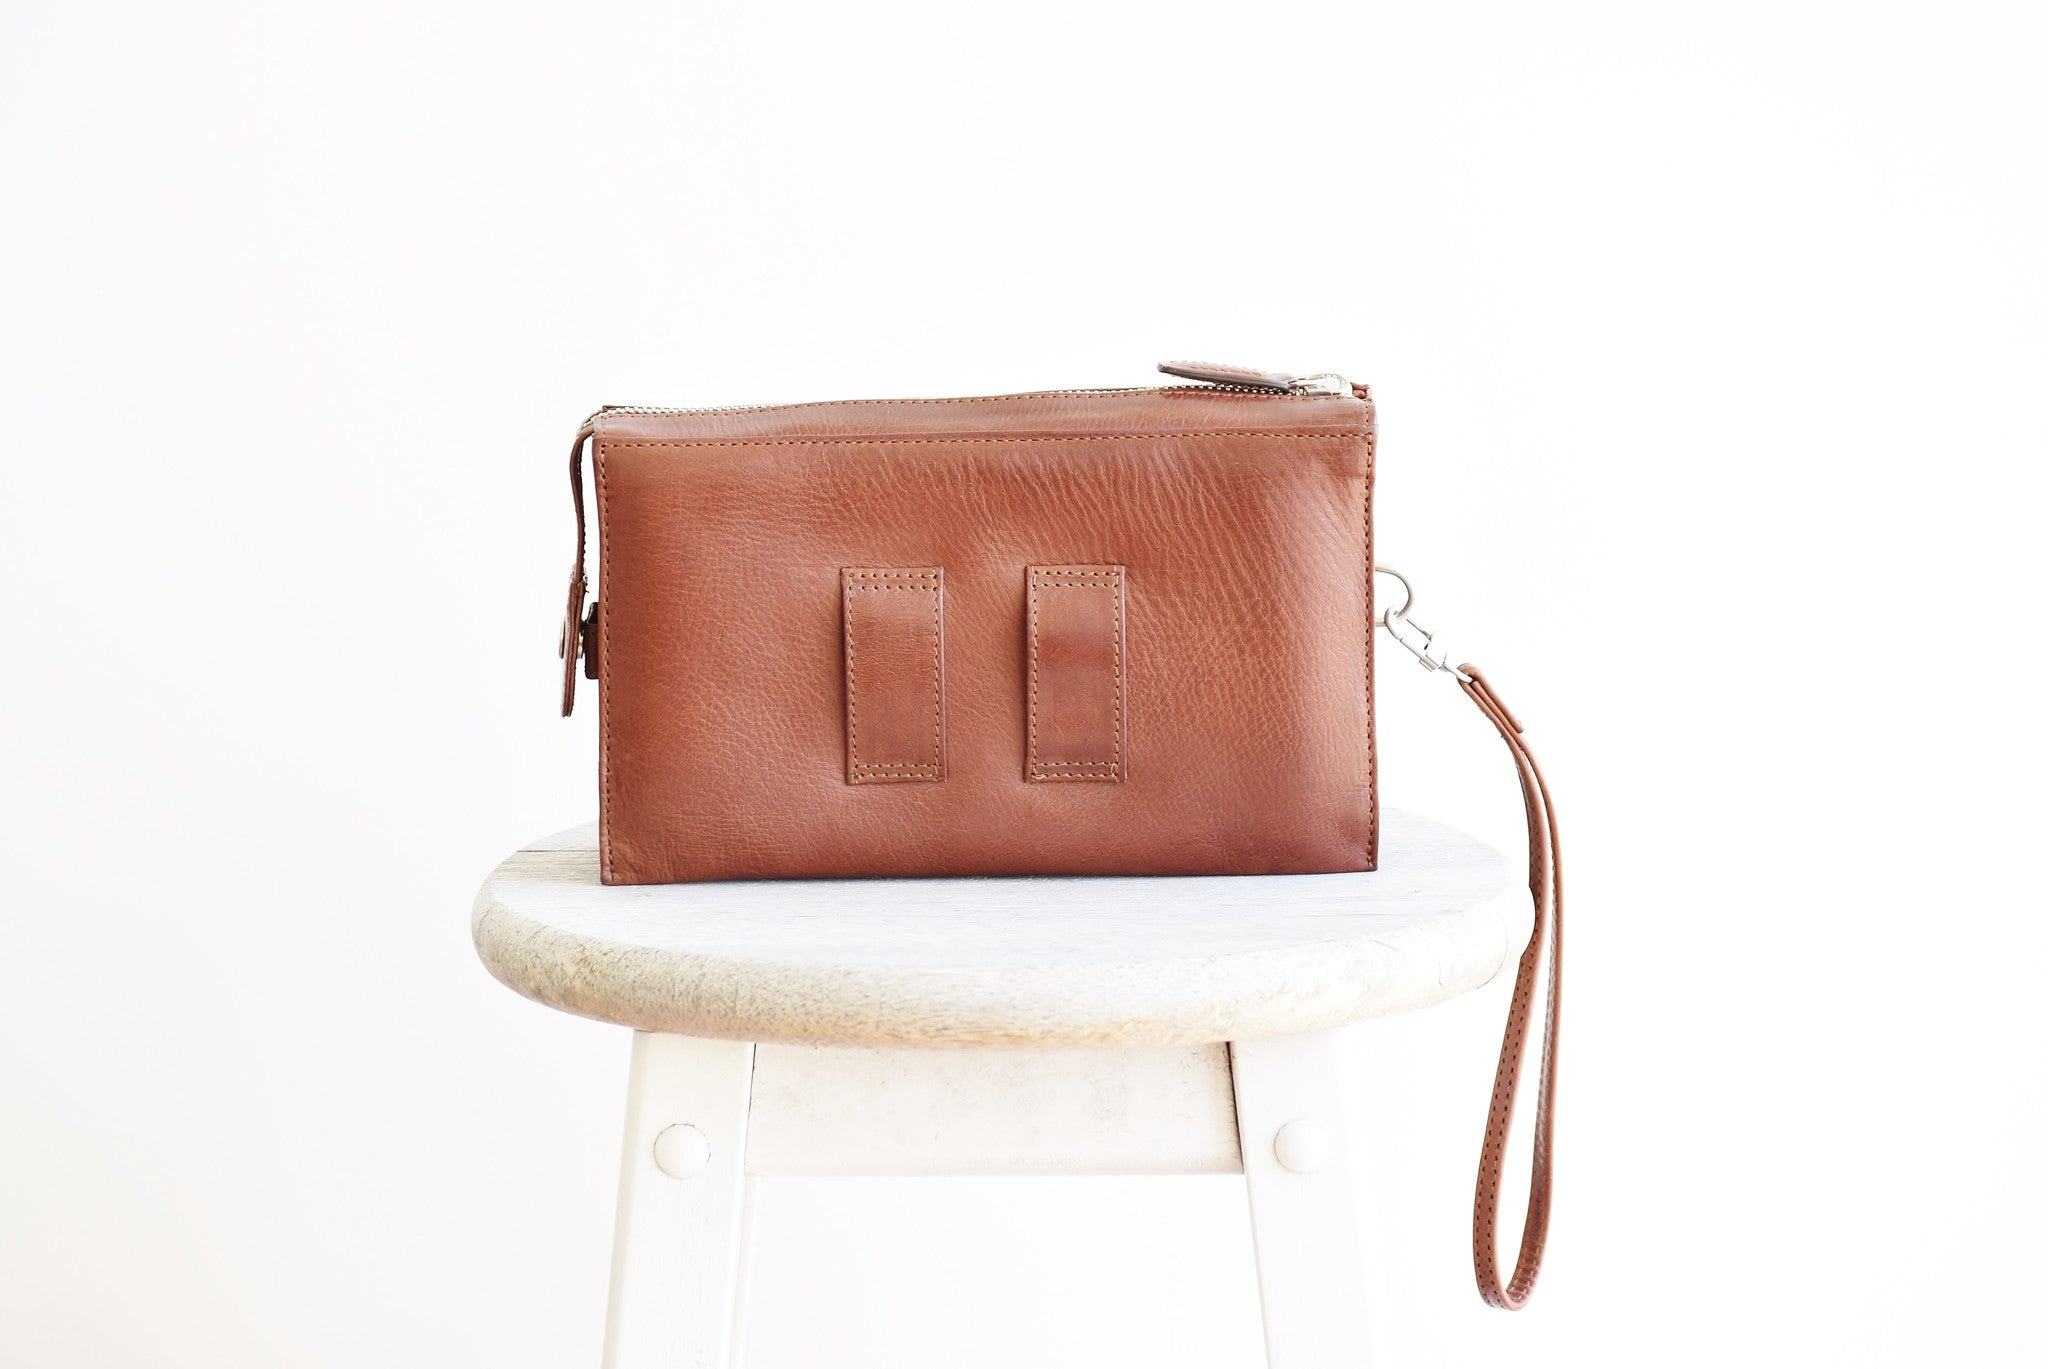 Convertible Belt Clutch - Coffee